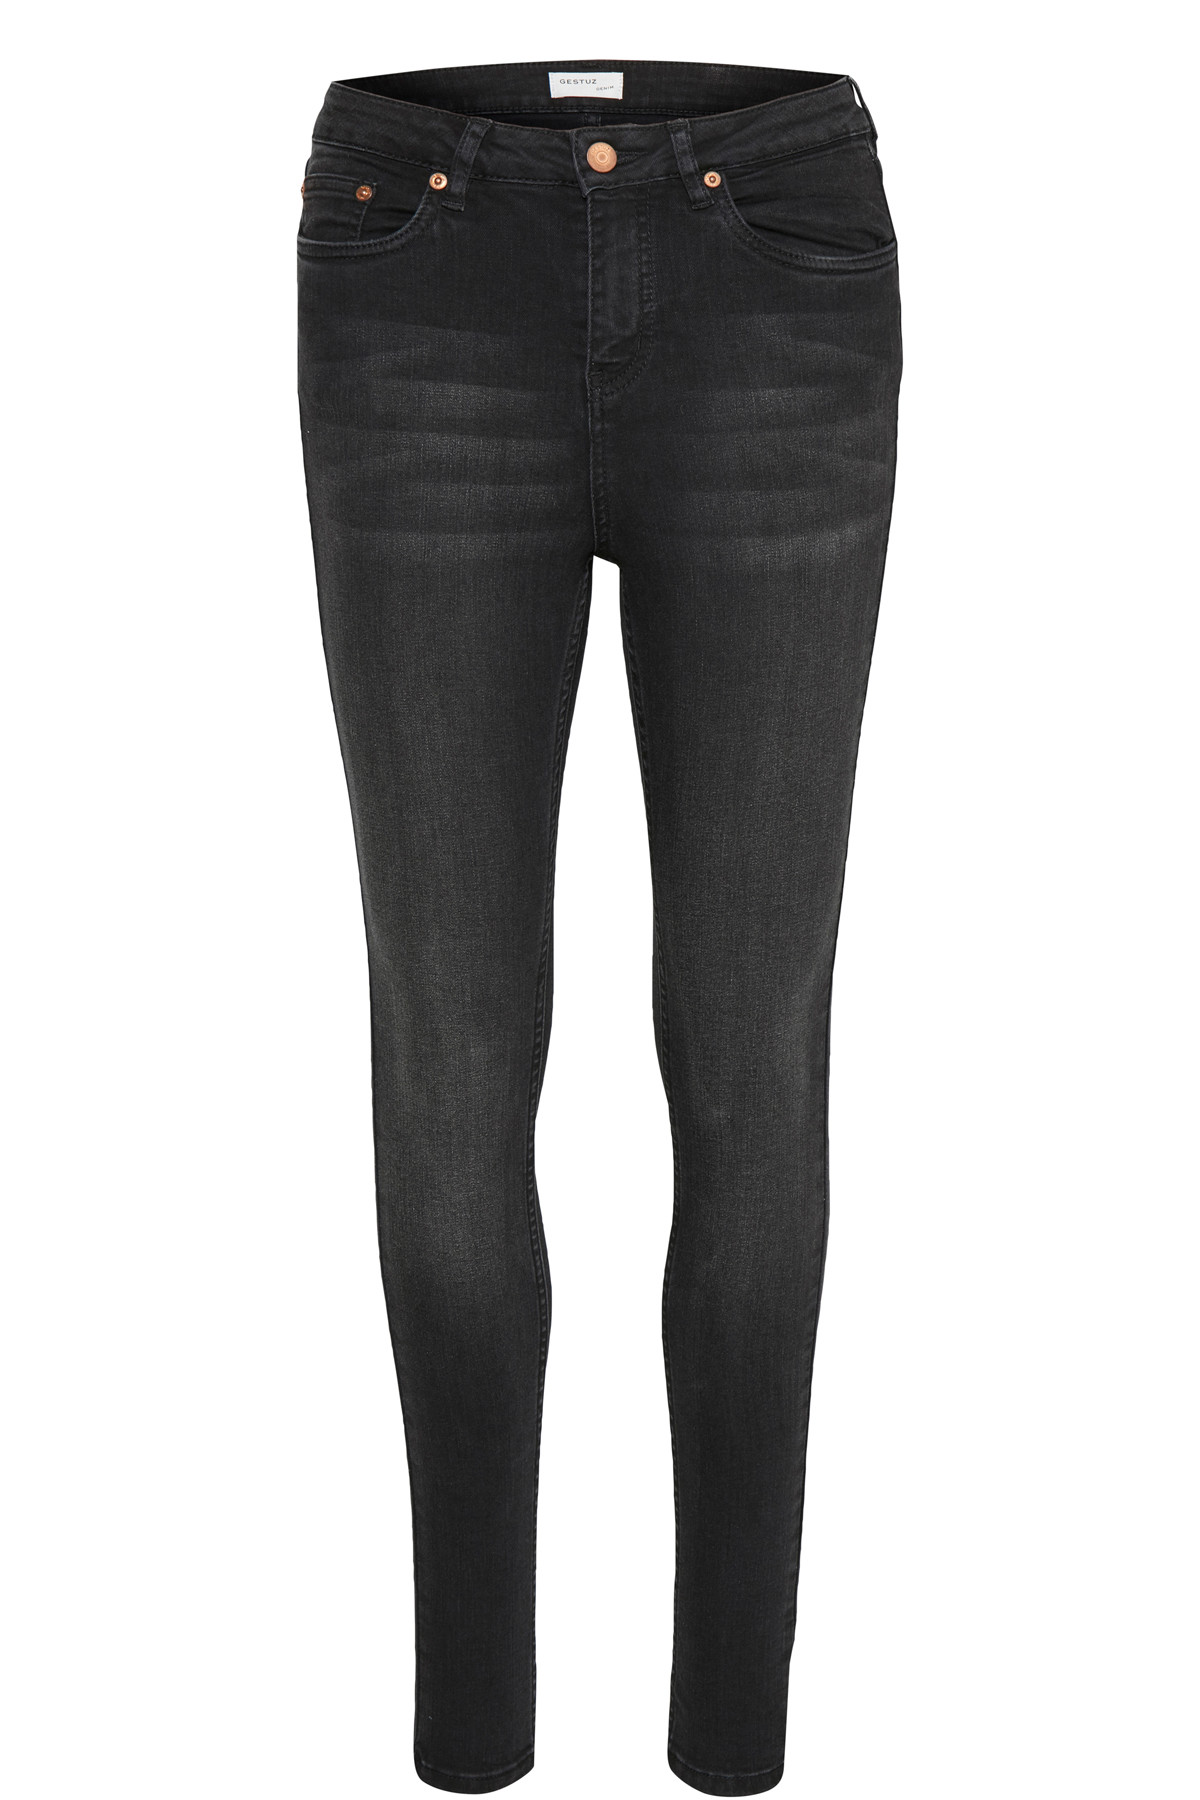 "Image of   GESTUZ EMILY JEANS 10900068 (Charcoal Grey 90899, ""32"", 26)"